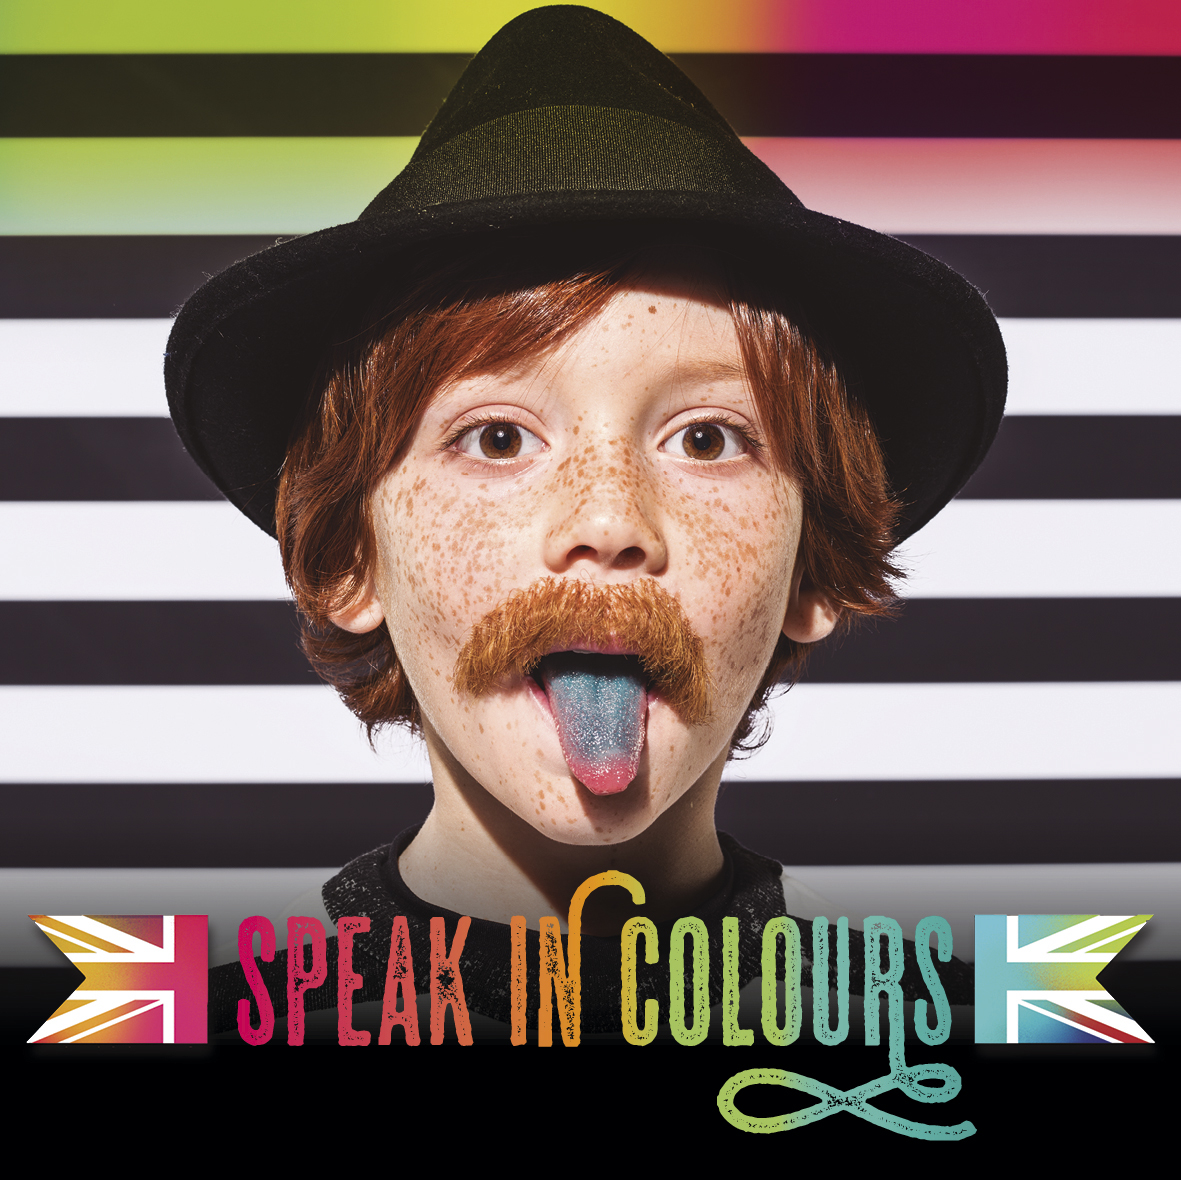 La nouvelle campagne de Kids&Us est lancée : Speak in Colours.